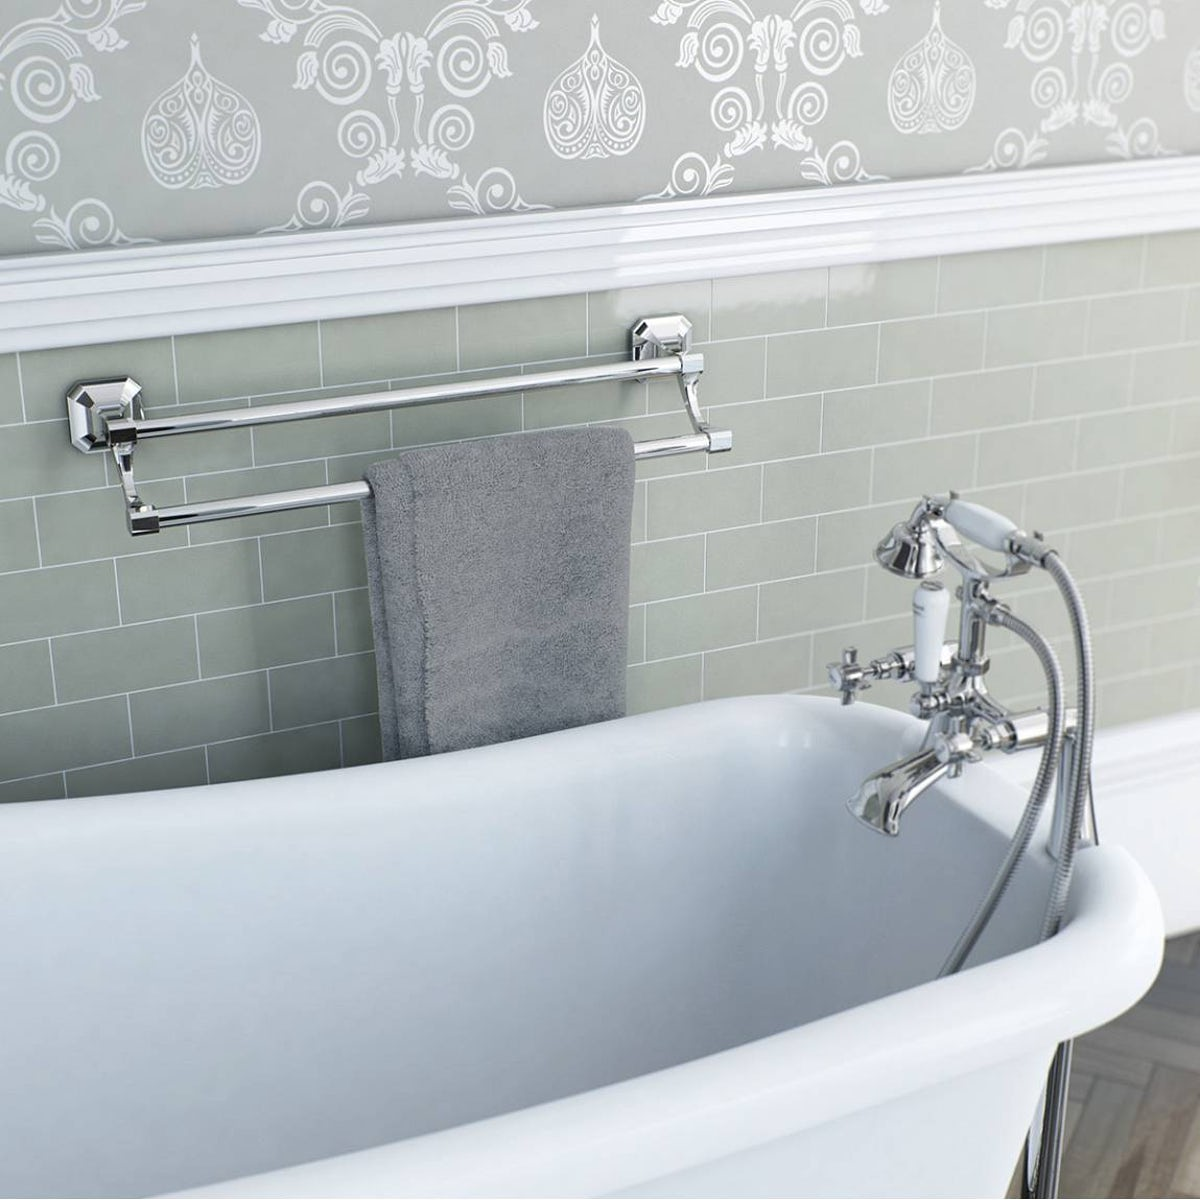 The bath co camberley double towel rail for Double towel rails for bathrooms